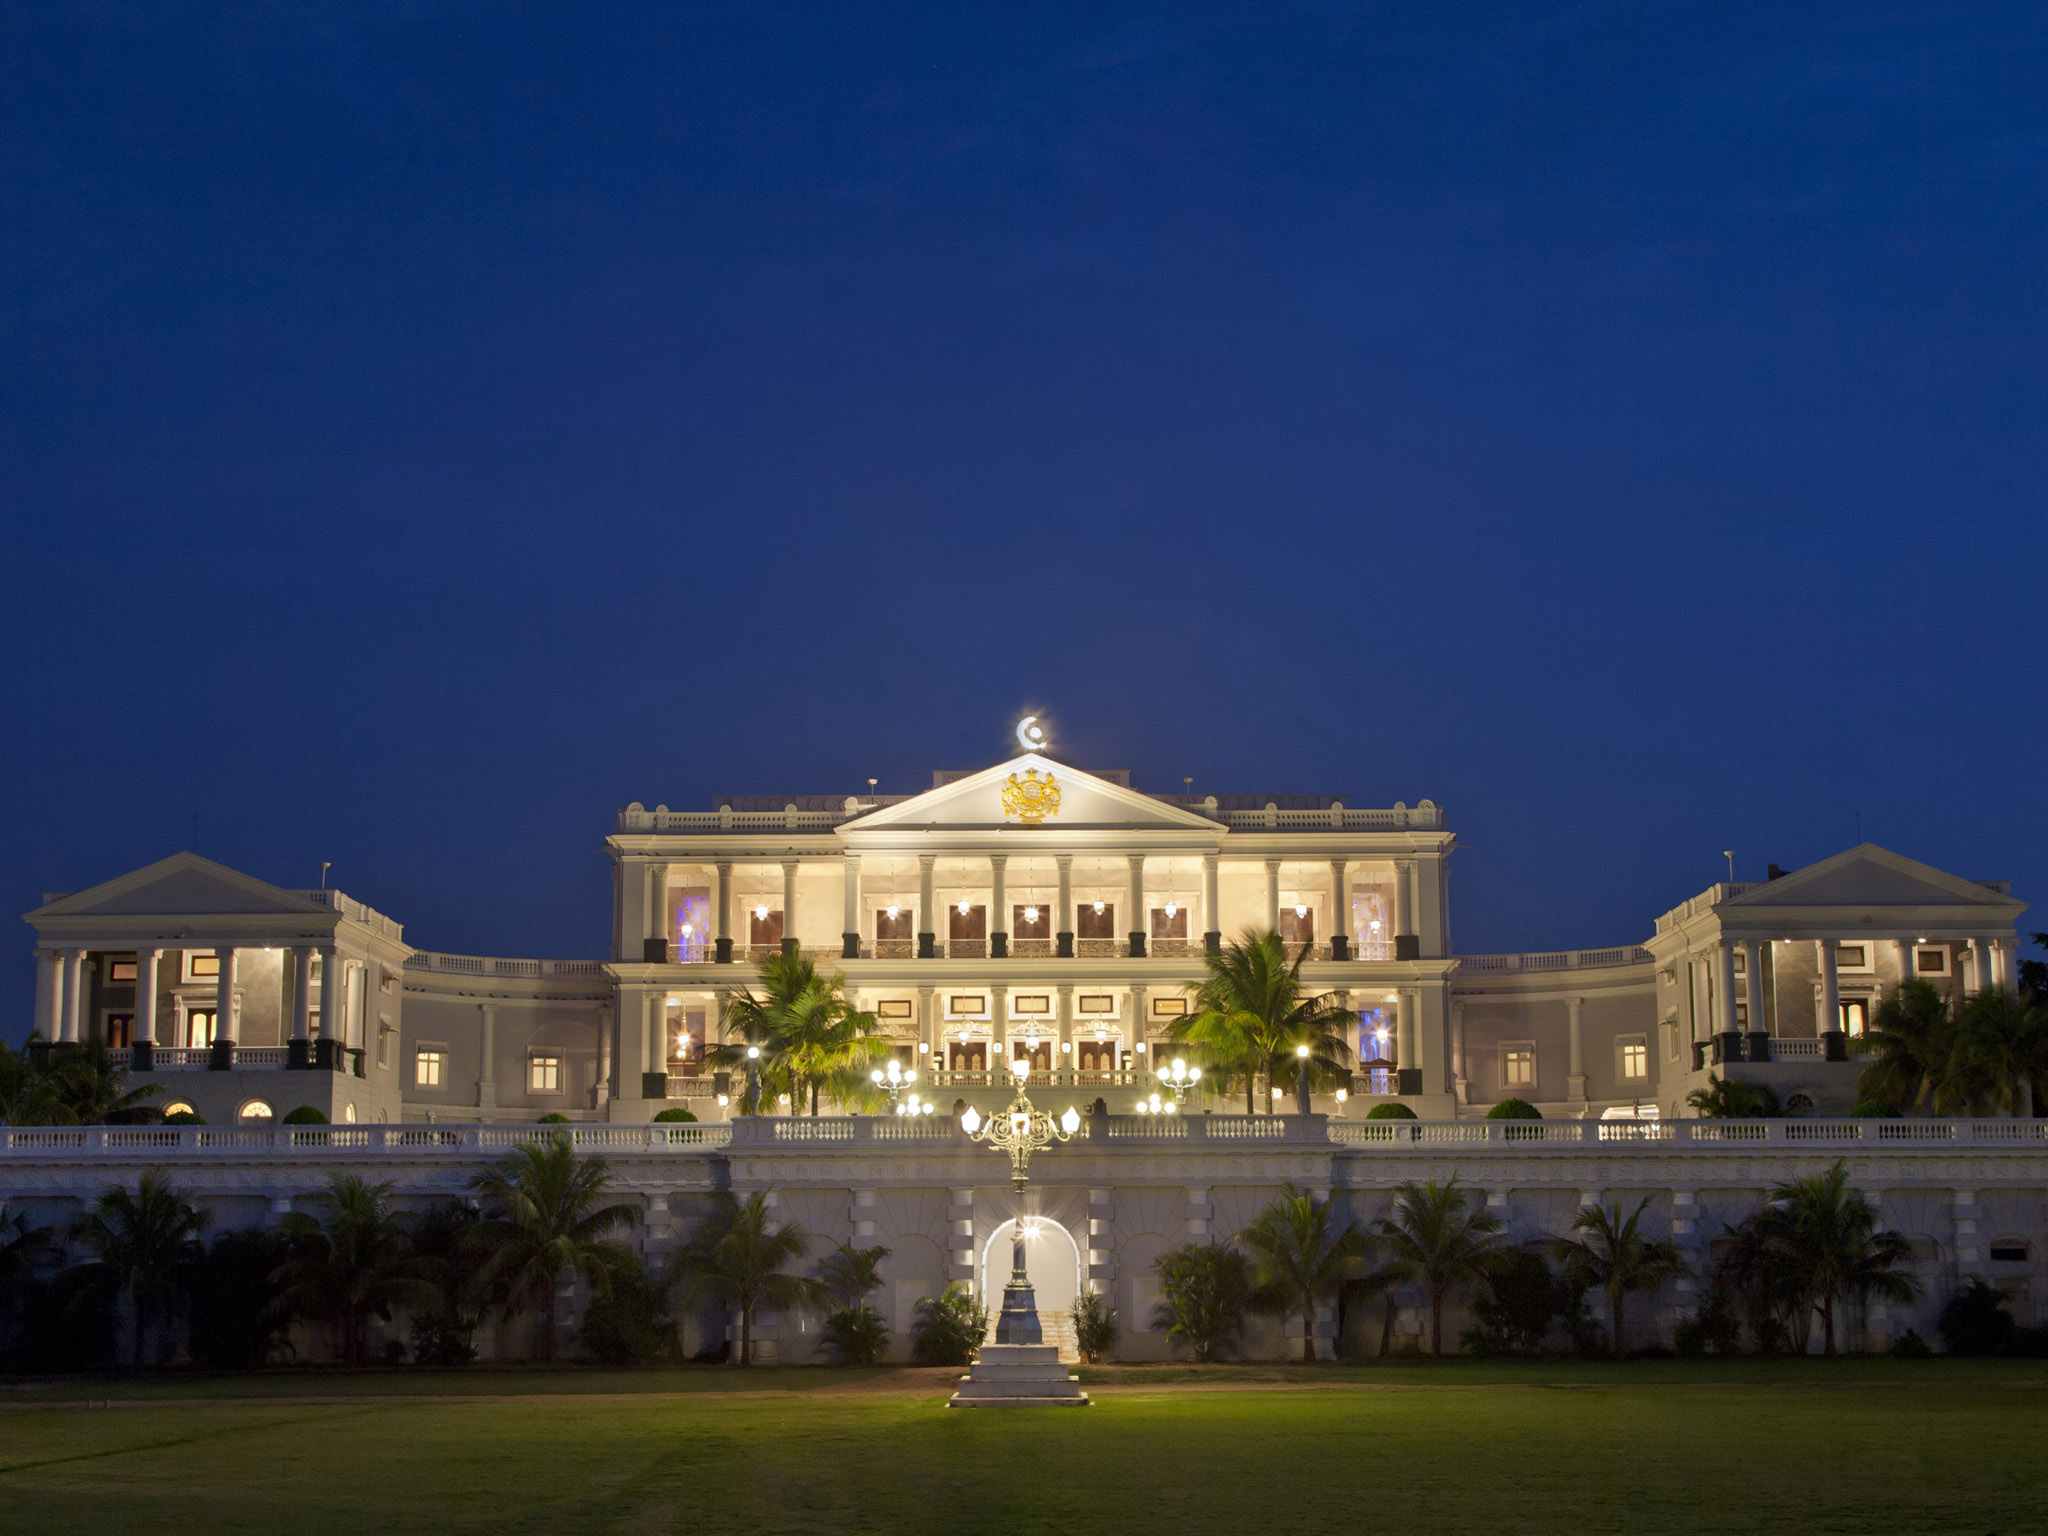 Heritage Palace Hotel In Hyderabad Taj Falaknuma Palace